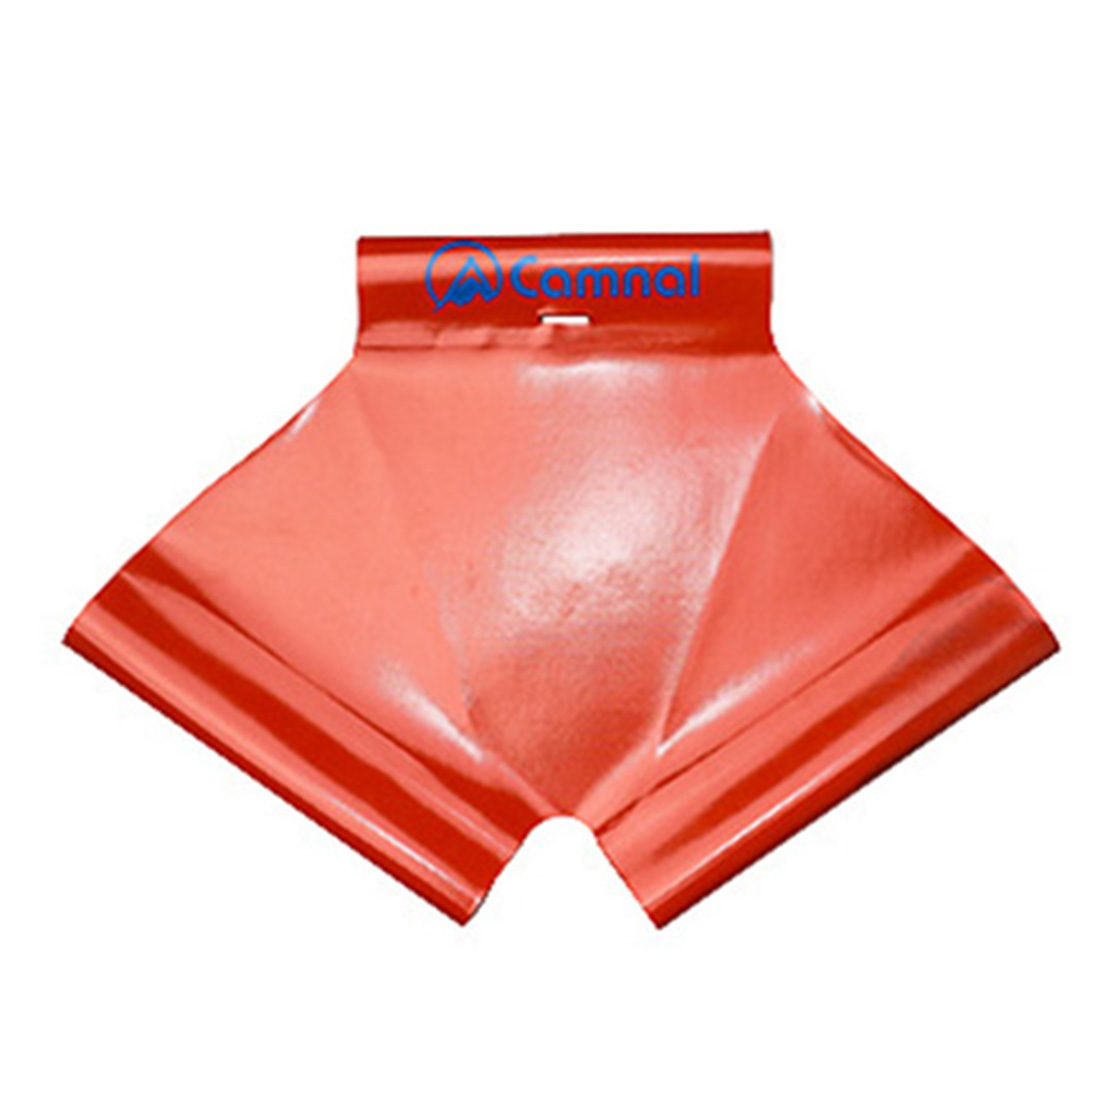 Covers Butt Seat Harness Wear-resisting PVC Sports Rappelling Protective